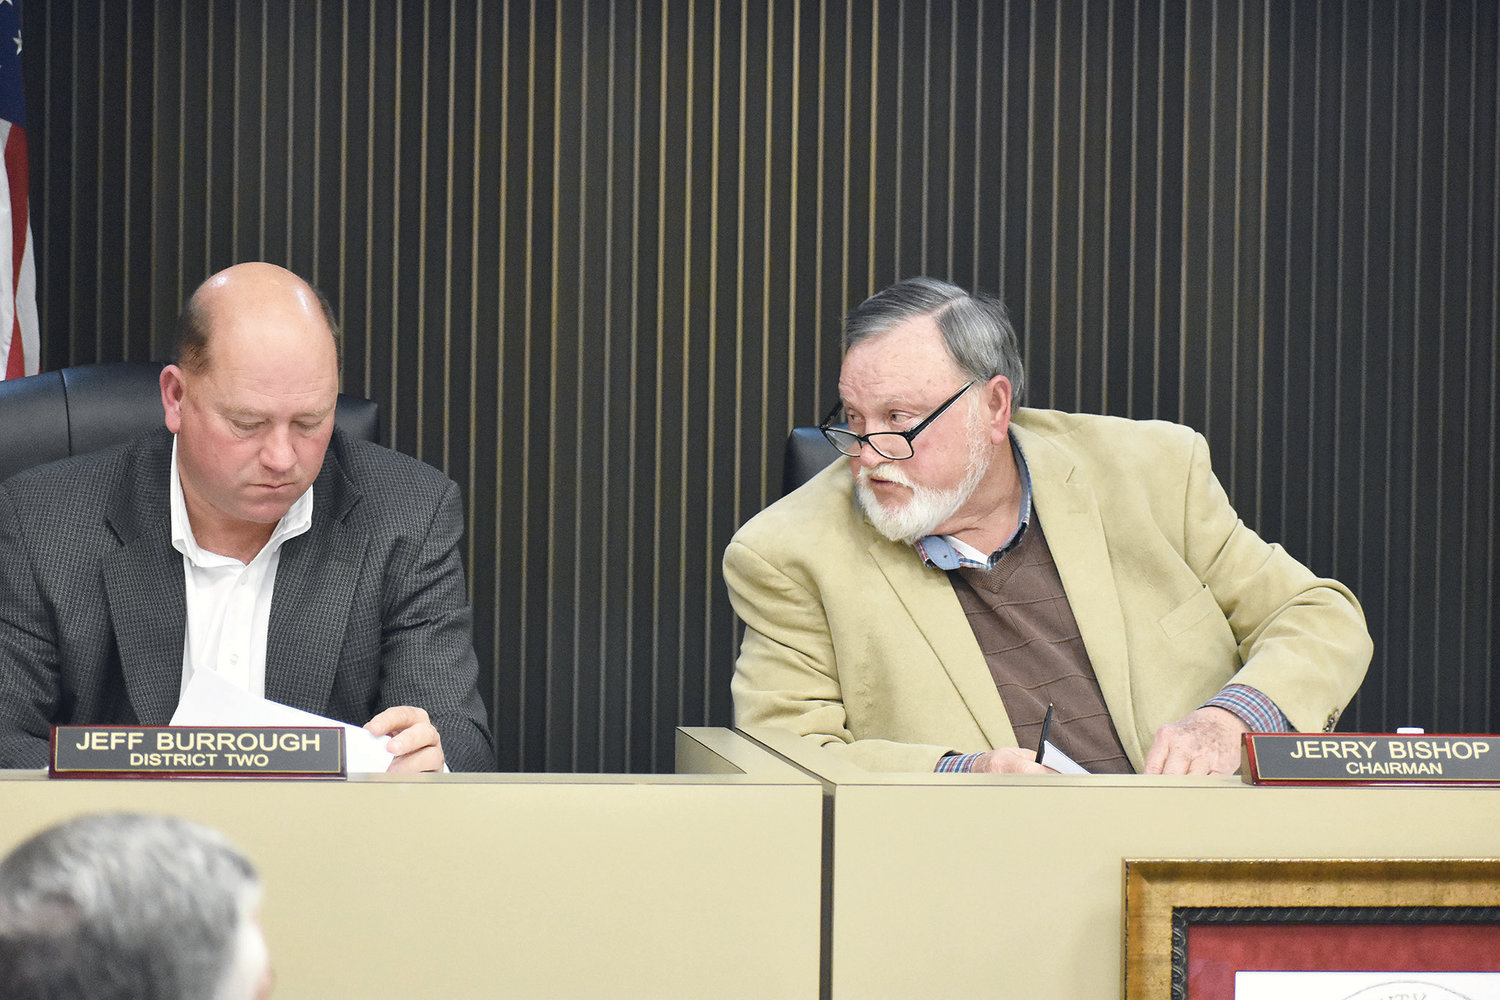 Walker County Commission Chairman Jerry Bishop, right, has an aside comment with District 2 Commissioner Jeff Burrough Tuesday night during discussion about approving repair work for the county jail.